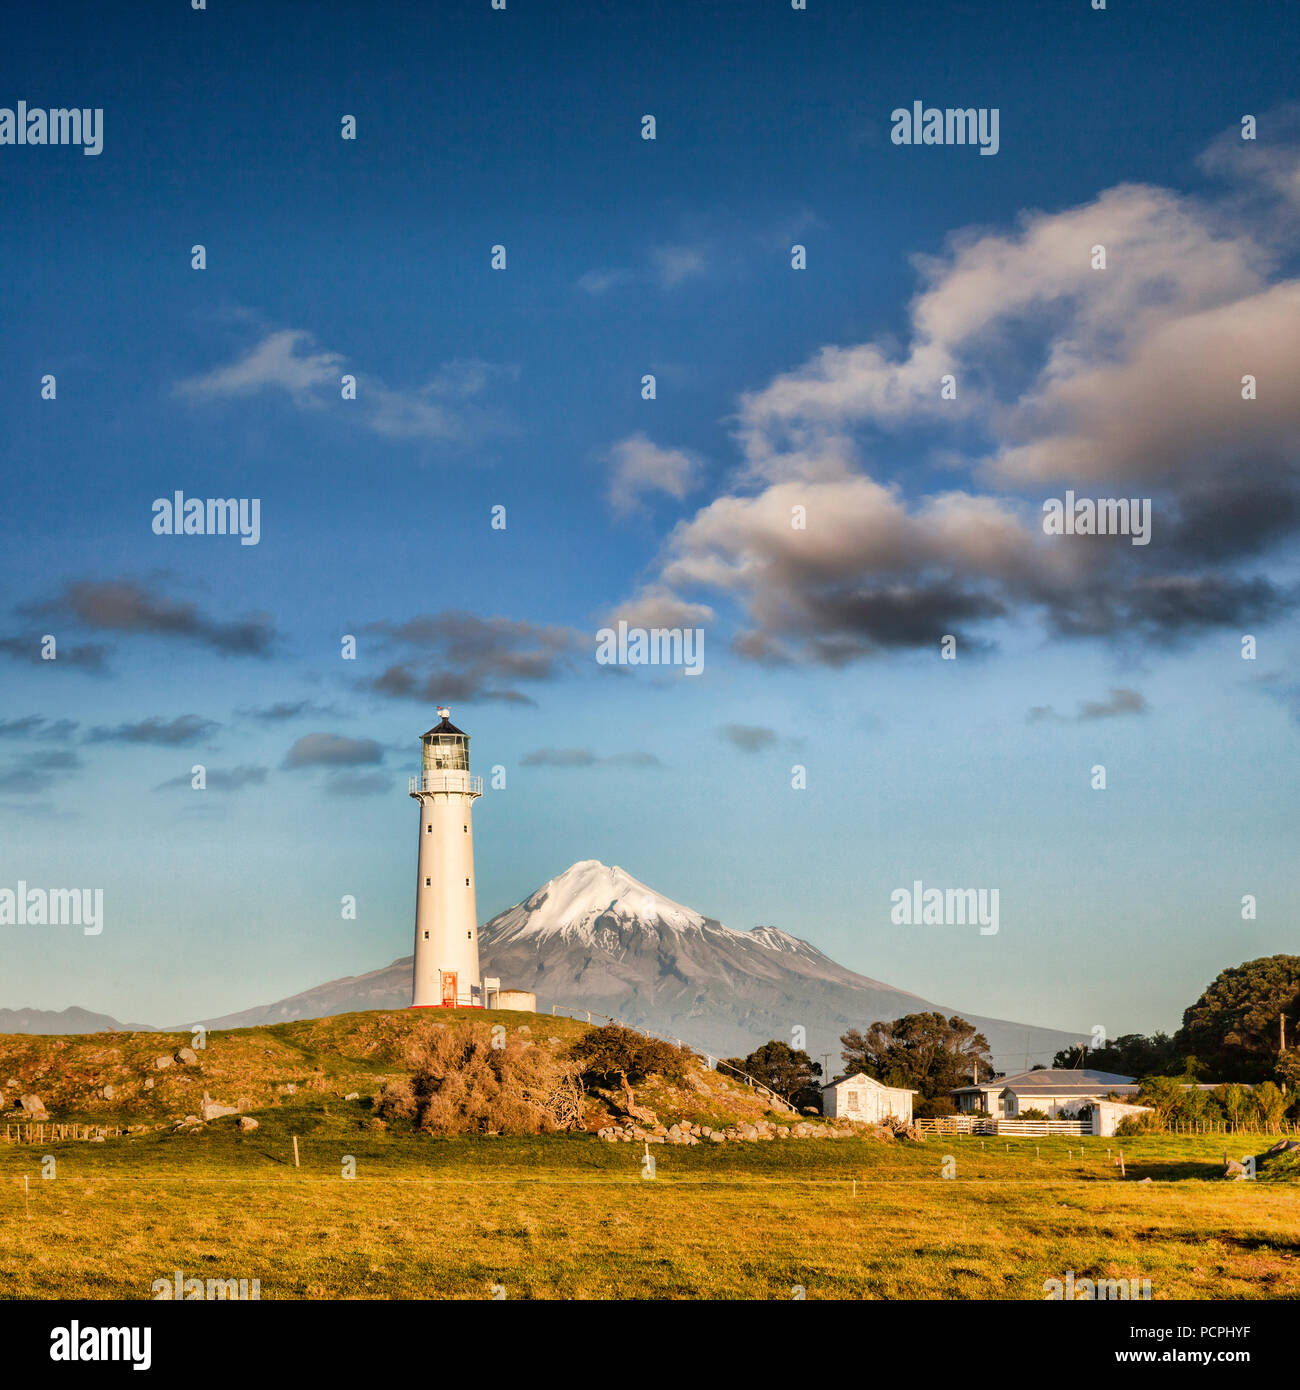 Mount Taranaki, also known as Mount Egmont, and Cape Egmont Lighthouse, Taranaki, New Zealand, at sunset. Stock Photo